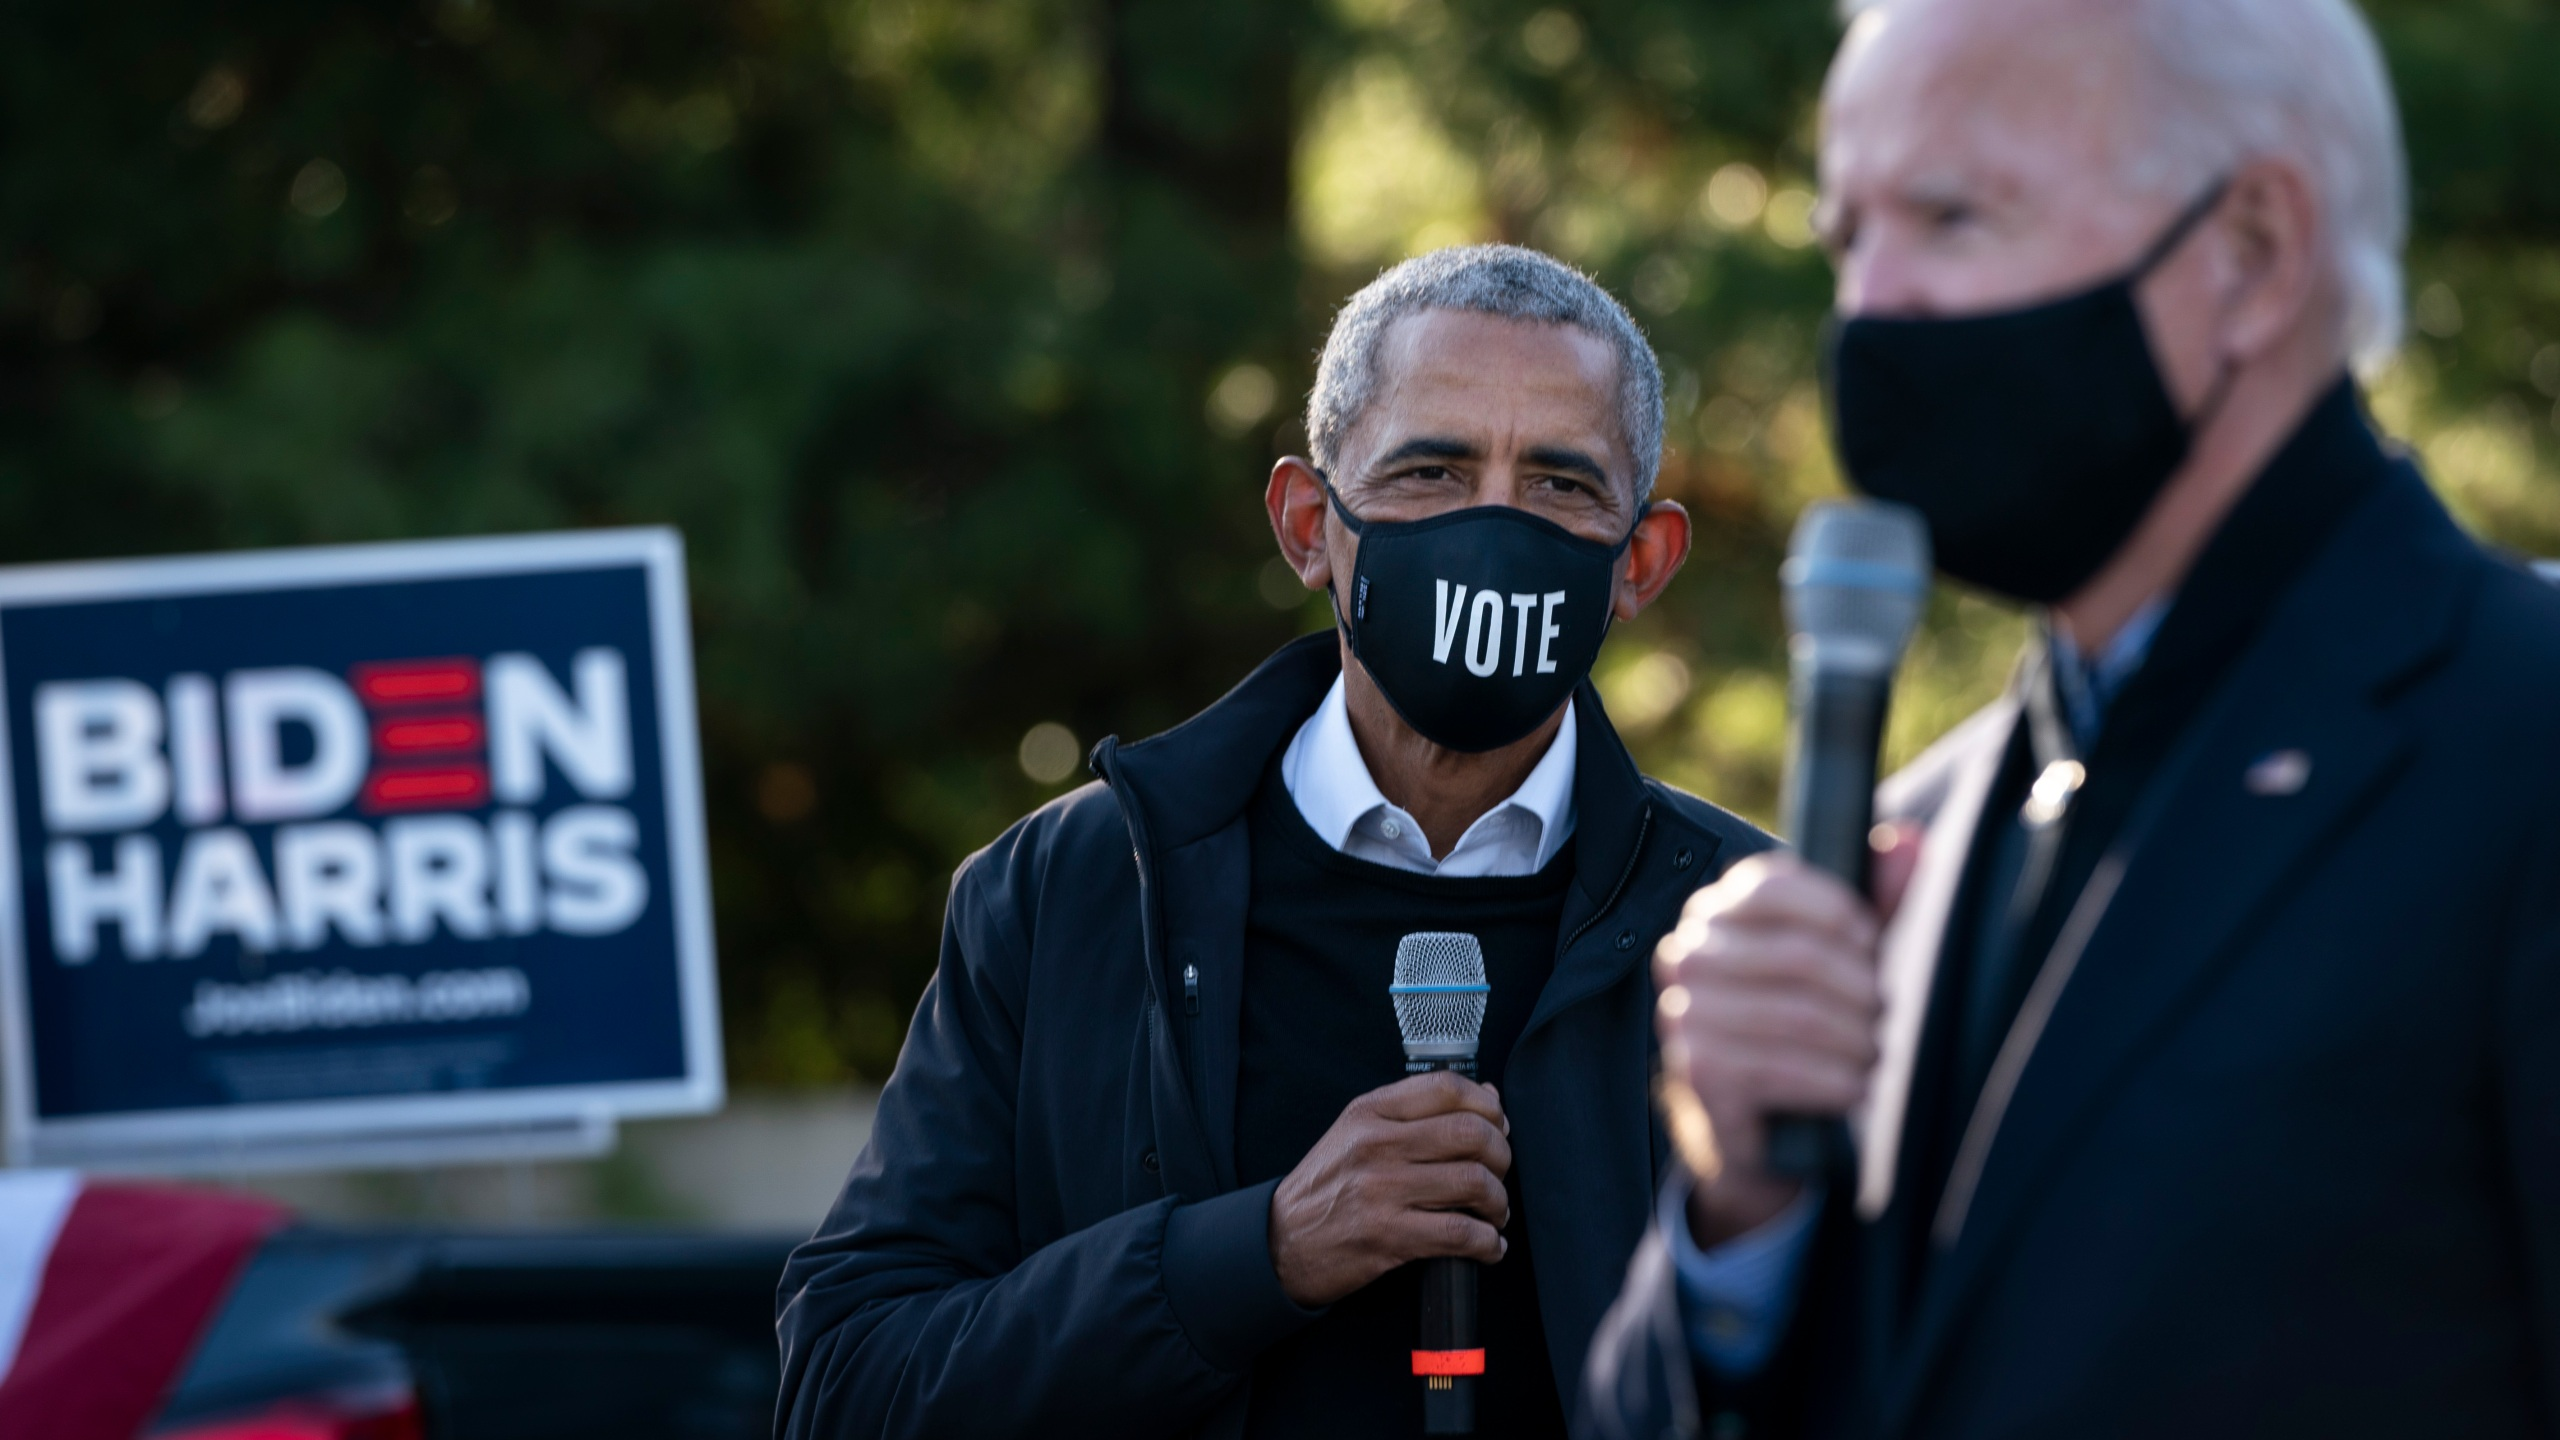 Democratic presidential nominee Joe Biden and former U.S. President Barack Obama make a stop at a canvass kickoff event at Birmingham Unitarian Church on Oct. 31, 2020 in Bloomfield Hills, Michigan. (Drew Angerer/Getty Images)